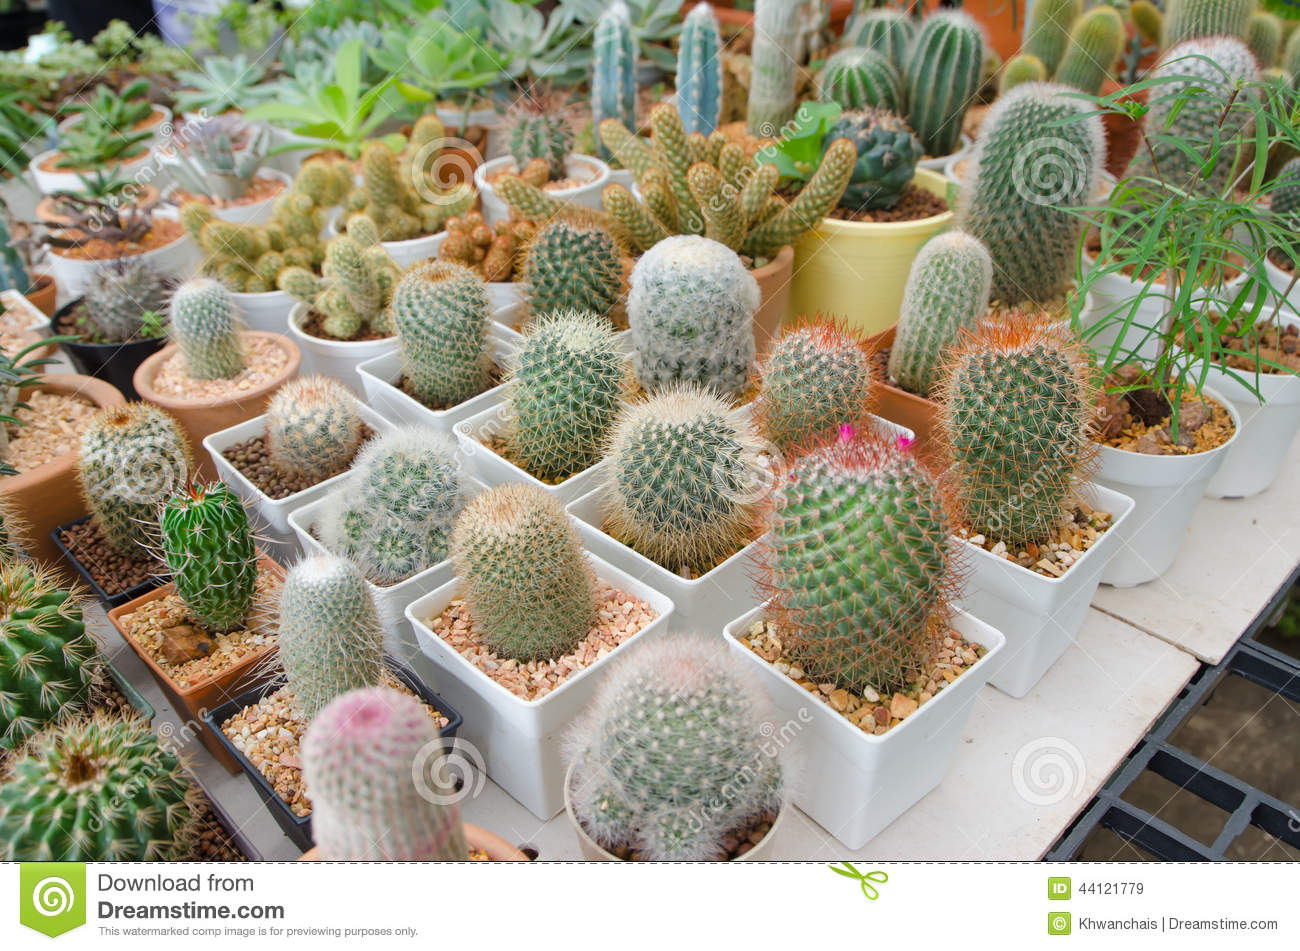 cactus plant in flower pot & Cactus plant in flower pot stock image. Image of home - 44121779